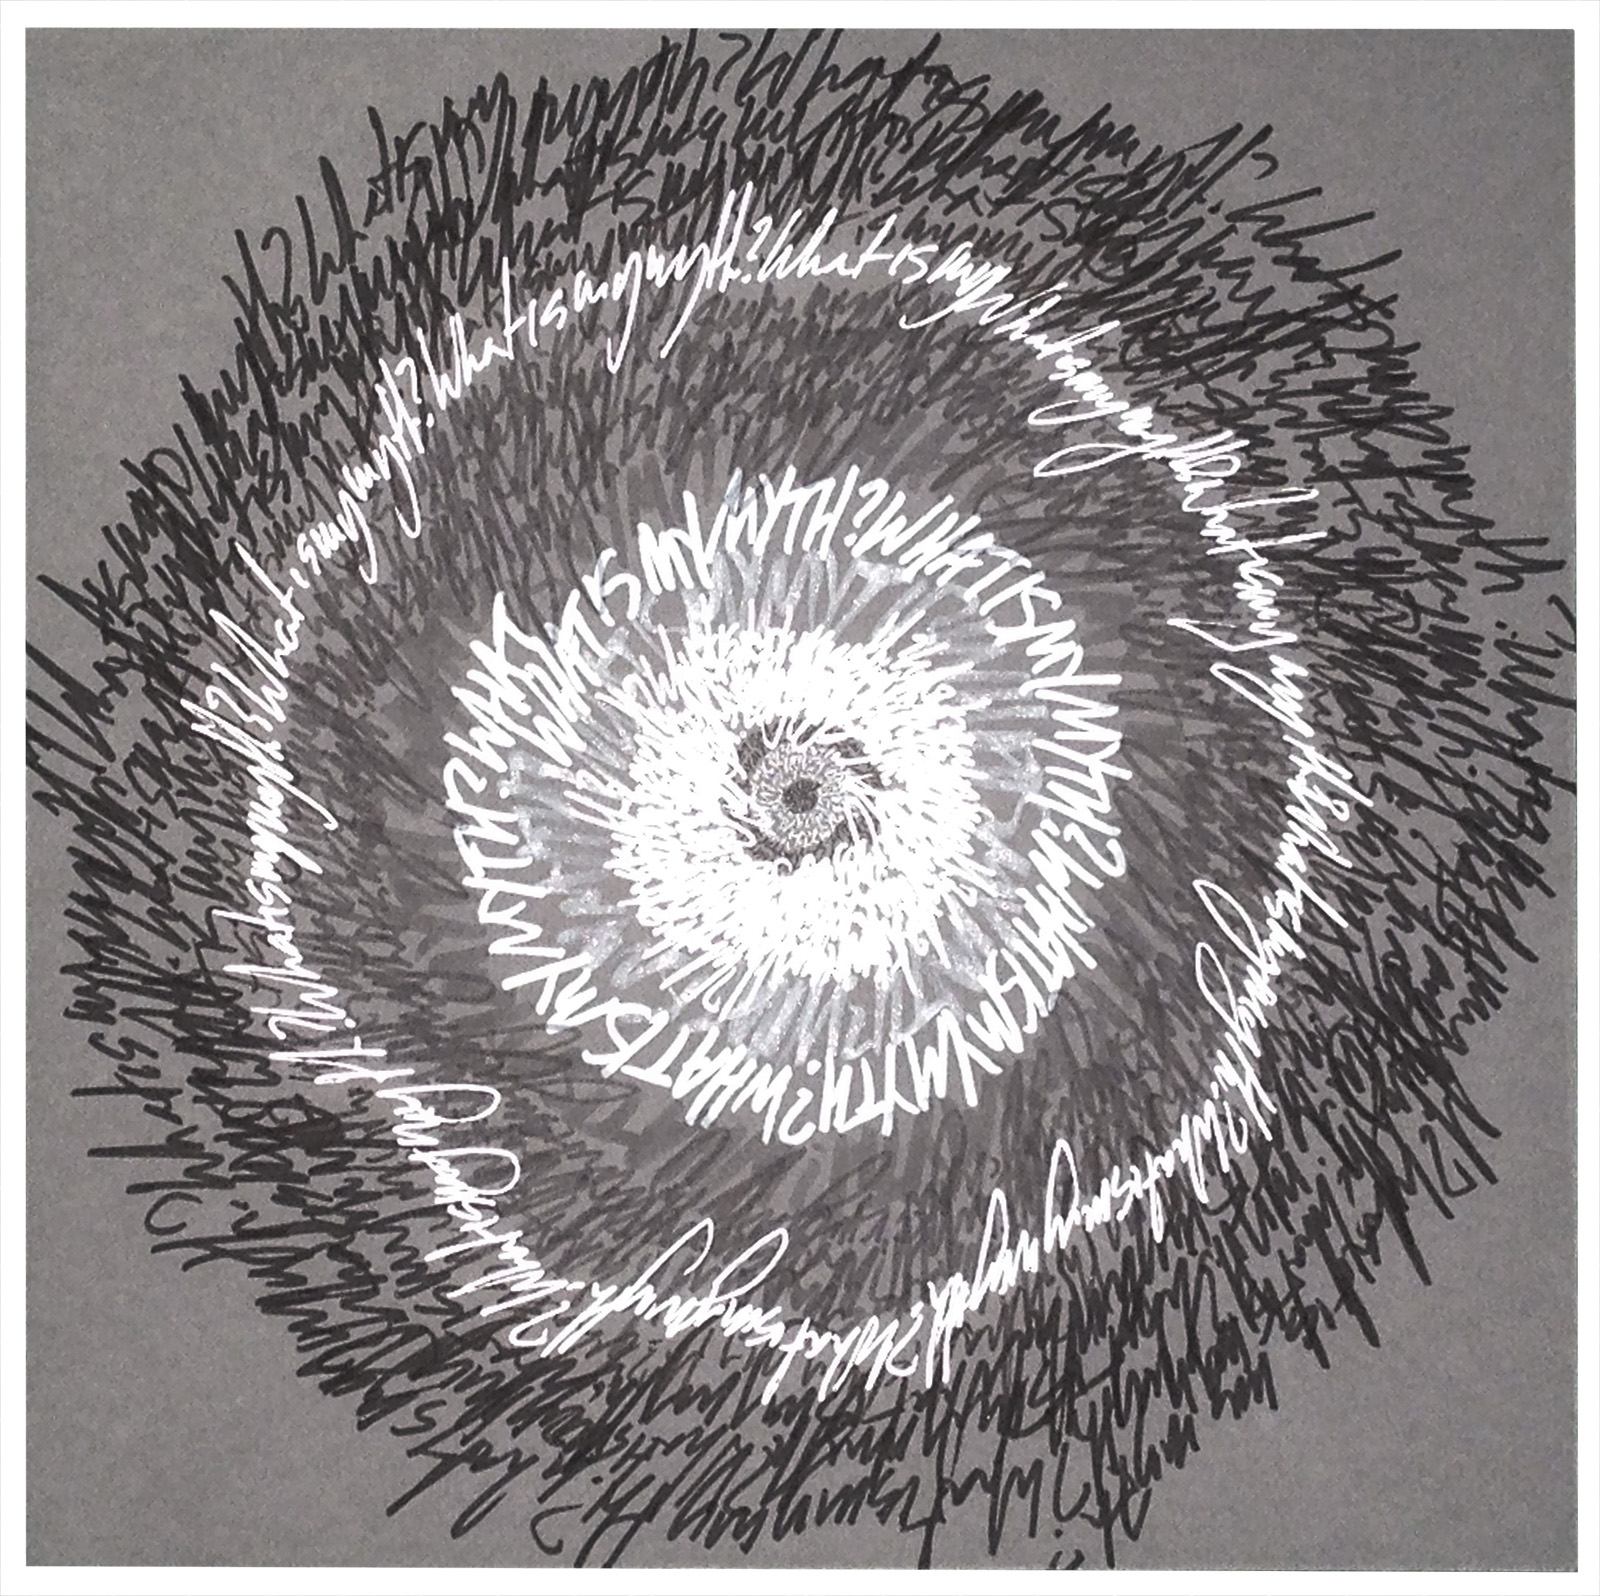 """Energy Spiral—What Is My Myth? #2"", 2014, pen & marker on paper, 10 in. x 10 in."